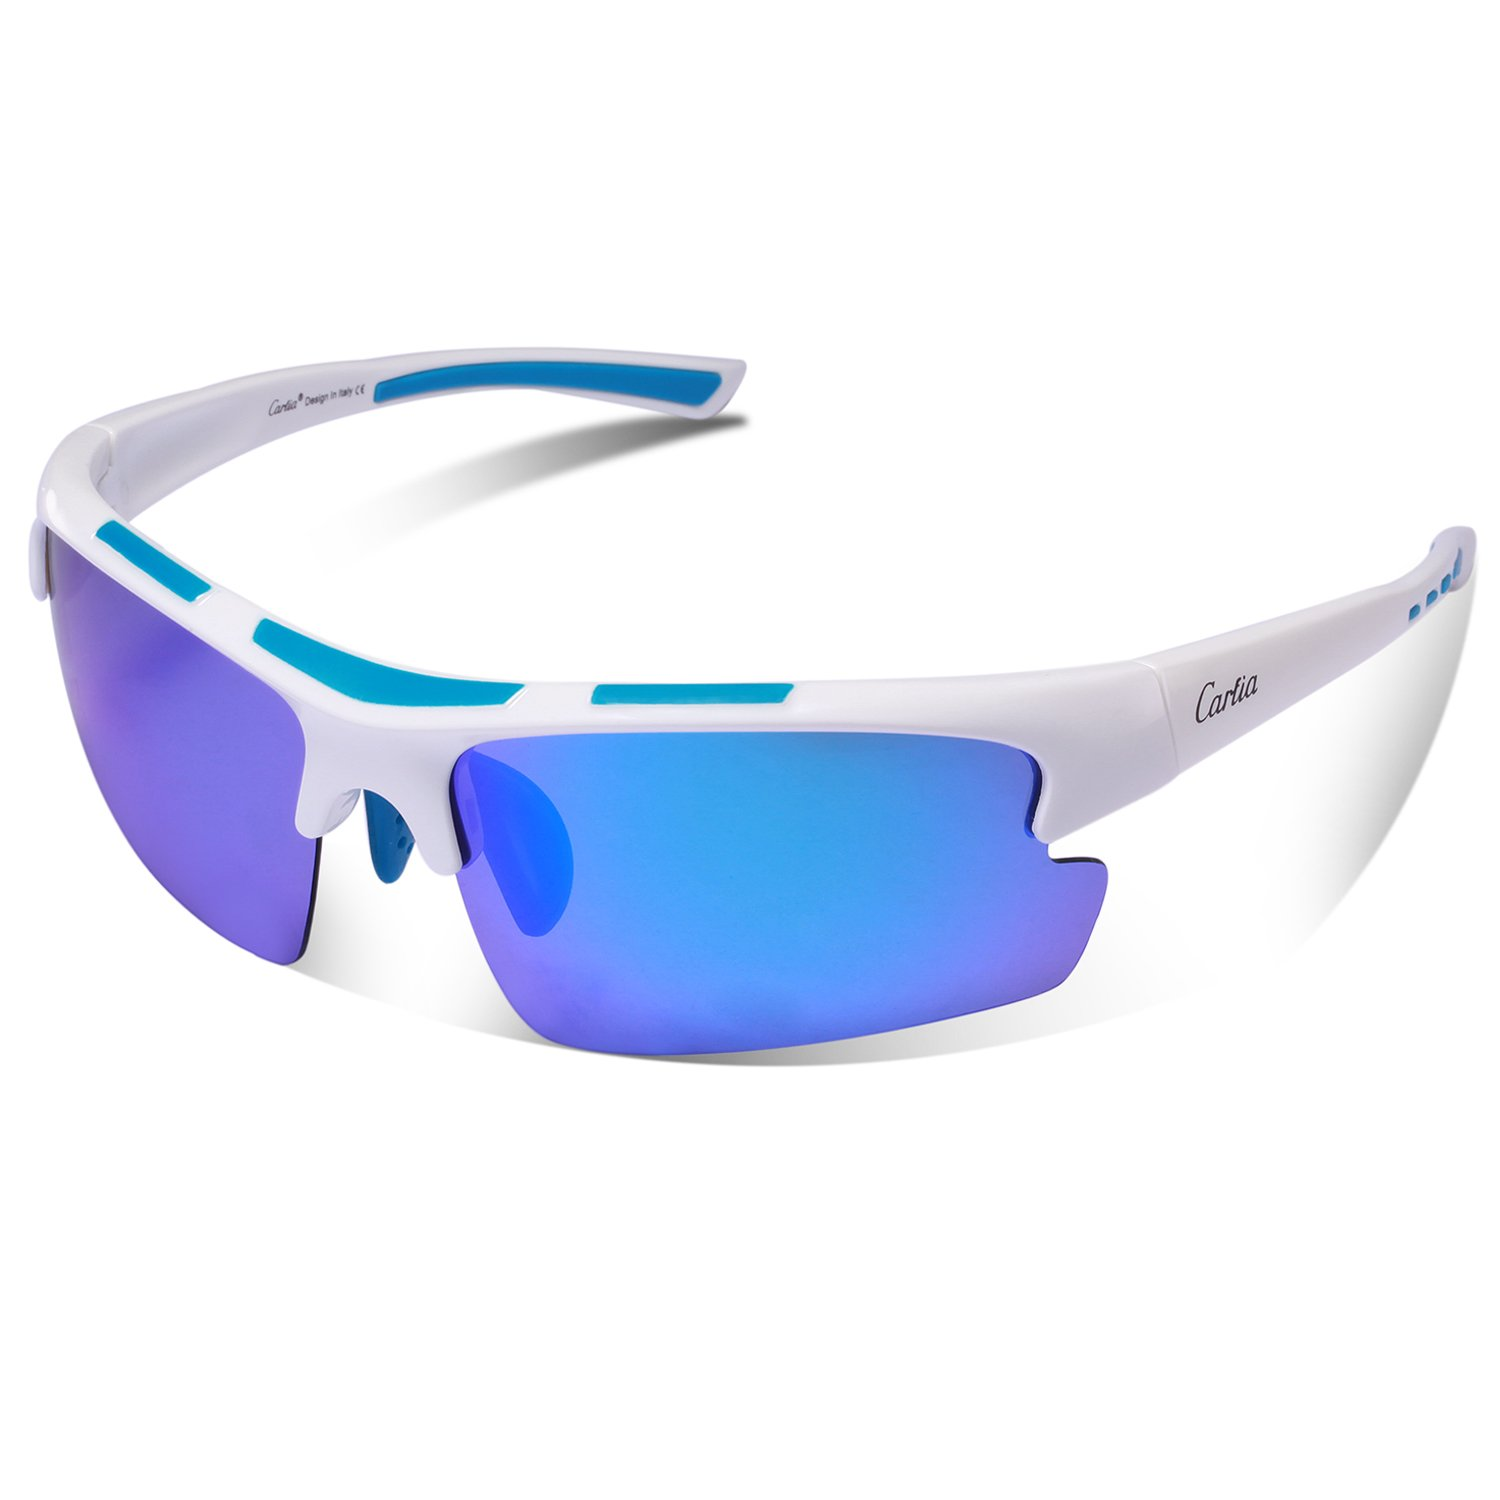 Sports Sunglasses - Carfia Cycling Running Fishing Sunglasses for Men Women Ultralight Comfy Frame by Carfia